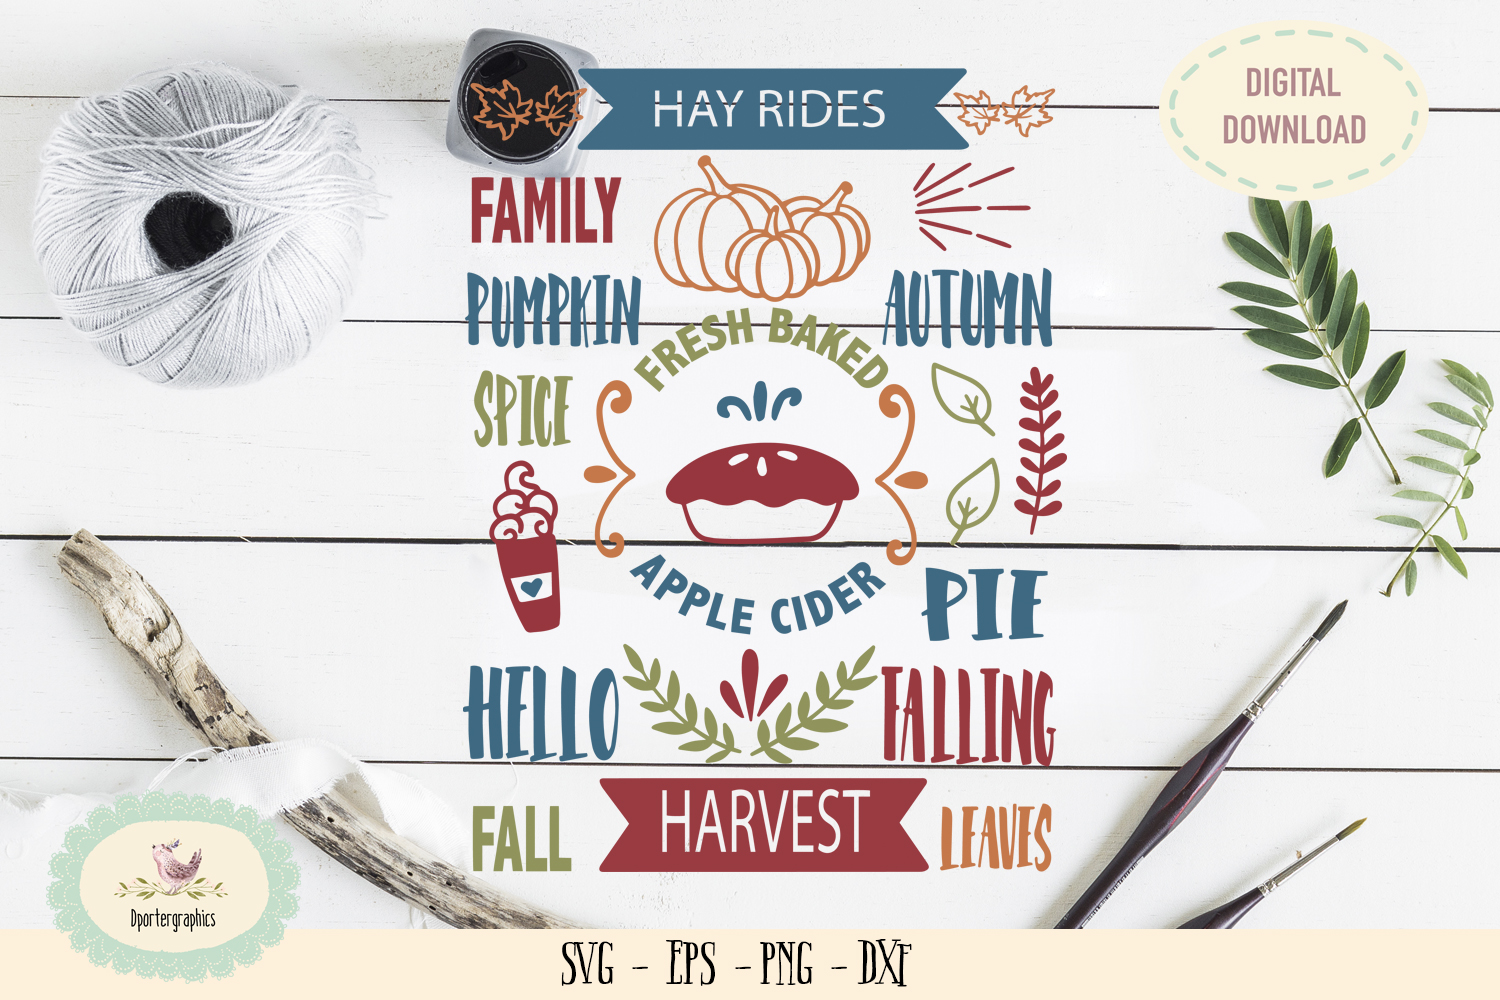 Hay rides pumpkin spice apple cider hello fall SVG PNG example image 1